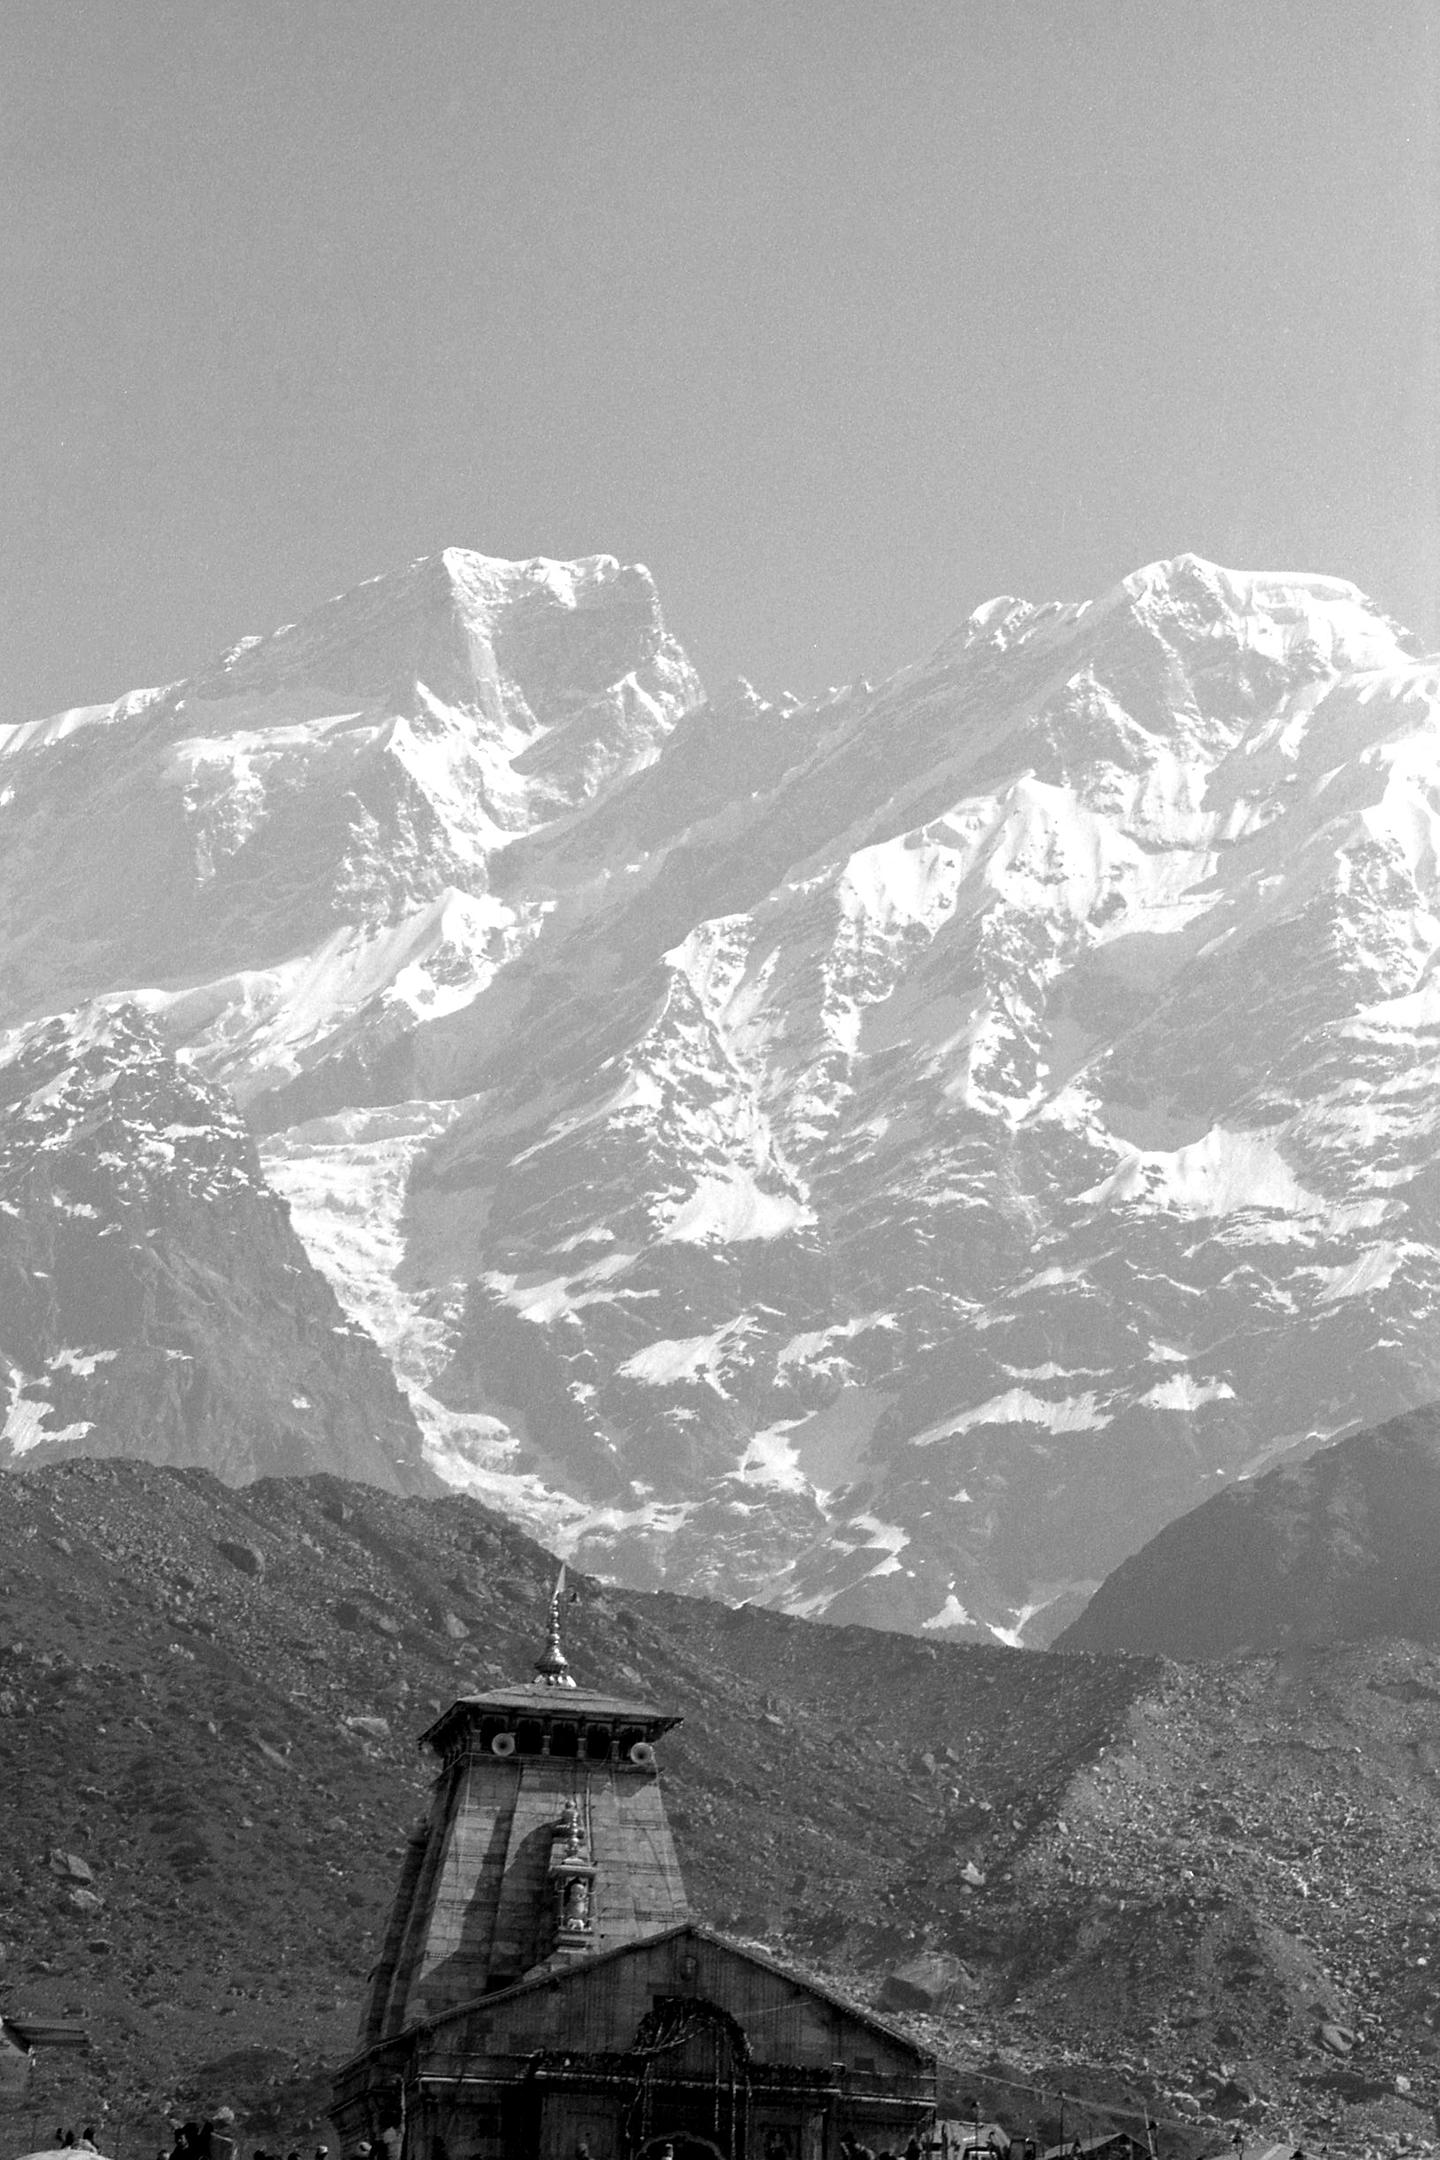 Divinty cradled by Himalayas,  Kedarnath 2019   Edition 1 of 5